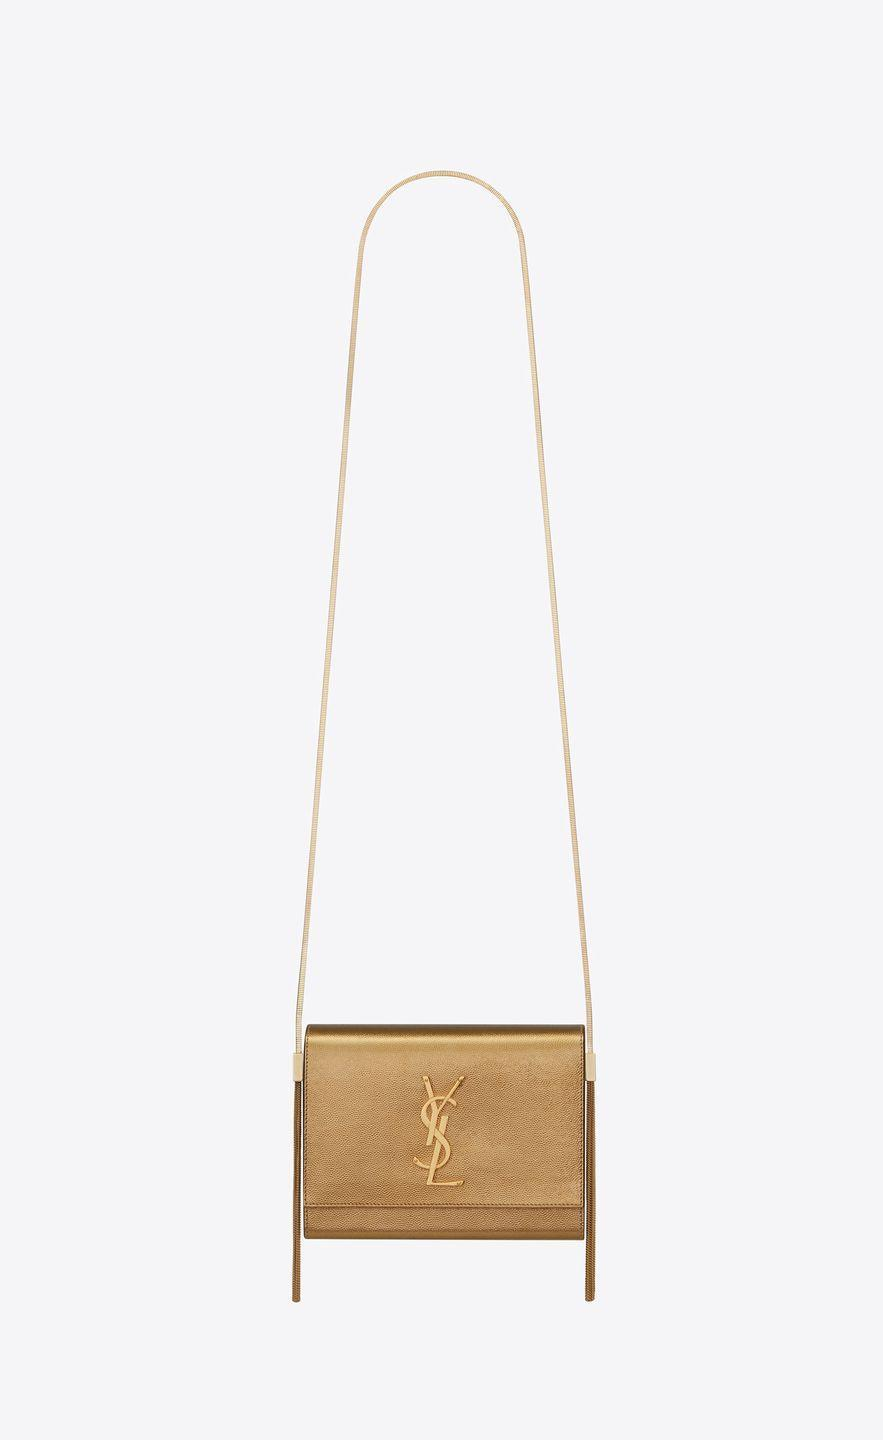 "<p>Bag, £1,630, Saint Laurent</p><p><a class=""link rapid-noclick-resp"" href=""https://www.ysl.com/gb/shop-product/women/handbags-monogram-kate-kate-box-bag-in-grain-de-poudre-embossed-metallic-leather_cod45493313hw.html#dept=women_bags_view_all"" rel=""nofollow noopener"" target=""_blank"" data-ylk=""slk:SHOP NOW"">SHOP NOW</a></p>"